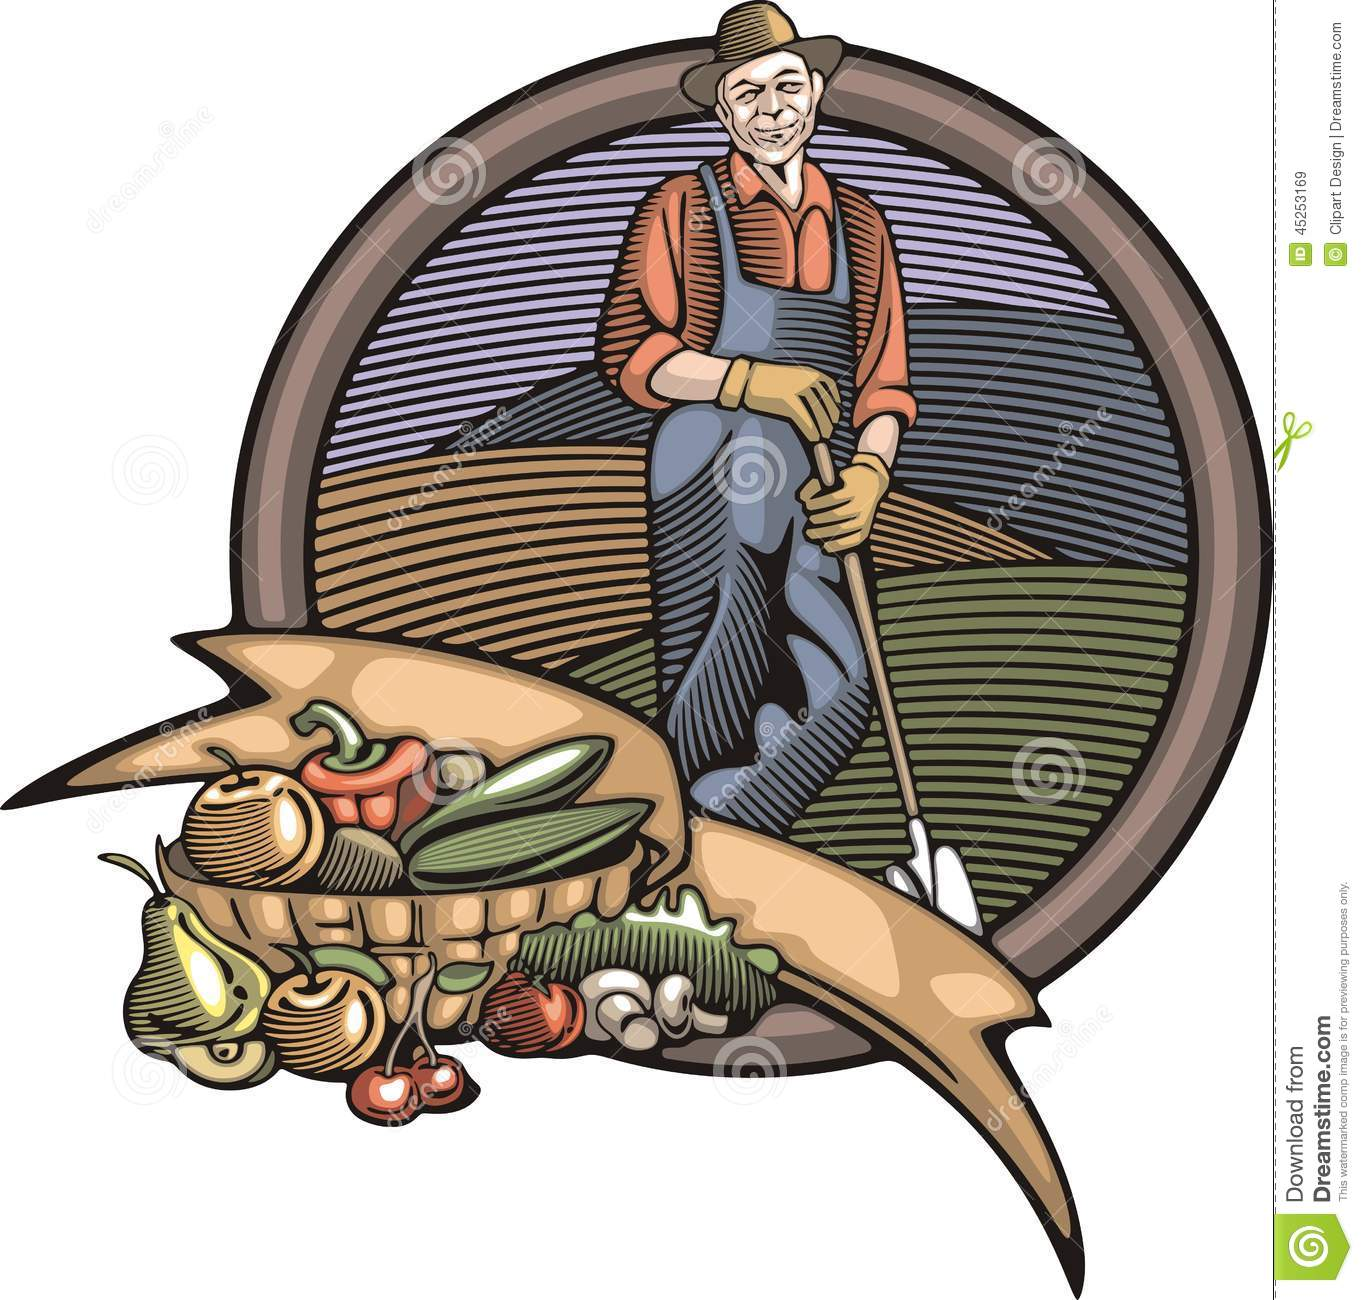 Countrylife and Farming Vector Illustration in Woodcut Style